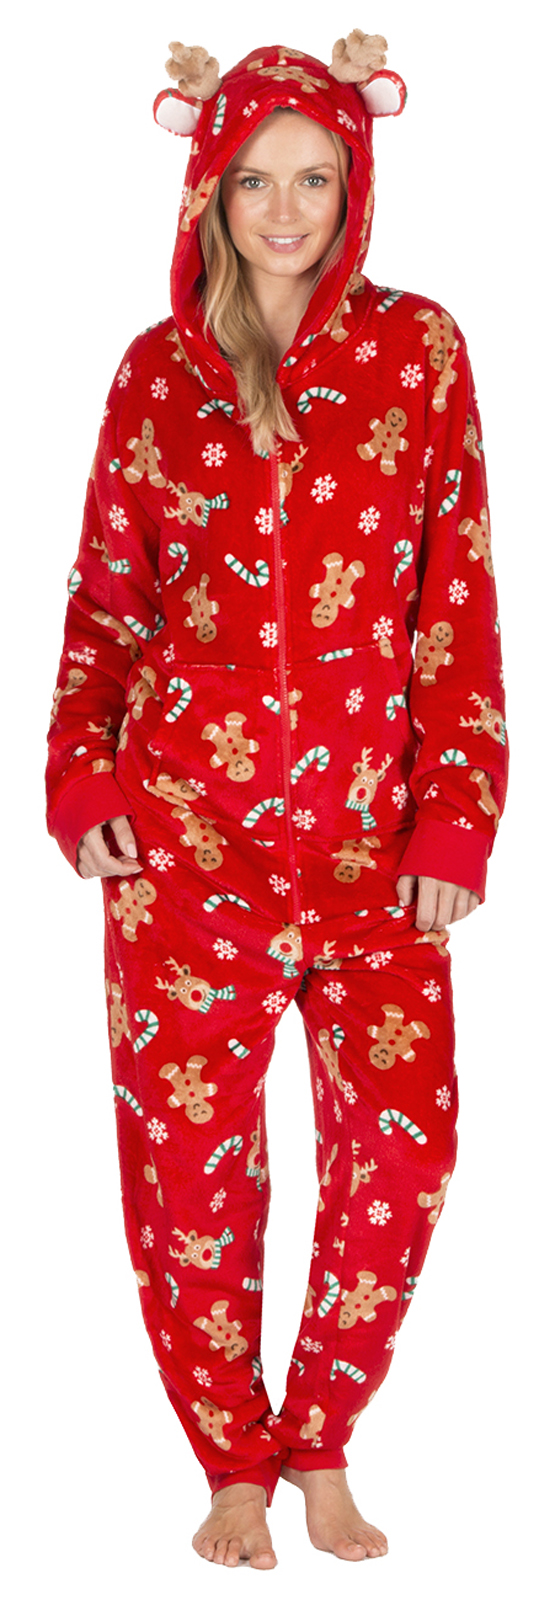 Womens Novelty Christmas Dressing Gown Onezie Xmas All In One Fleece ...